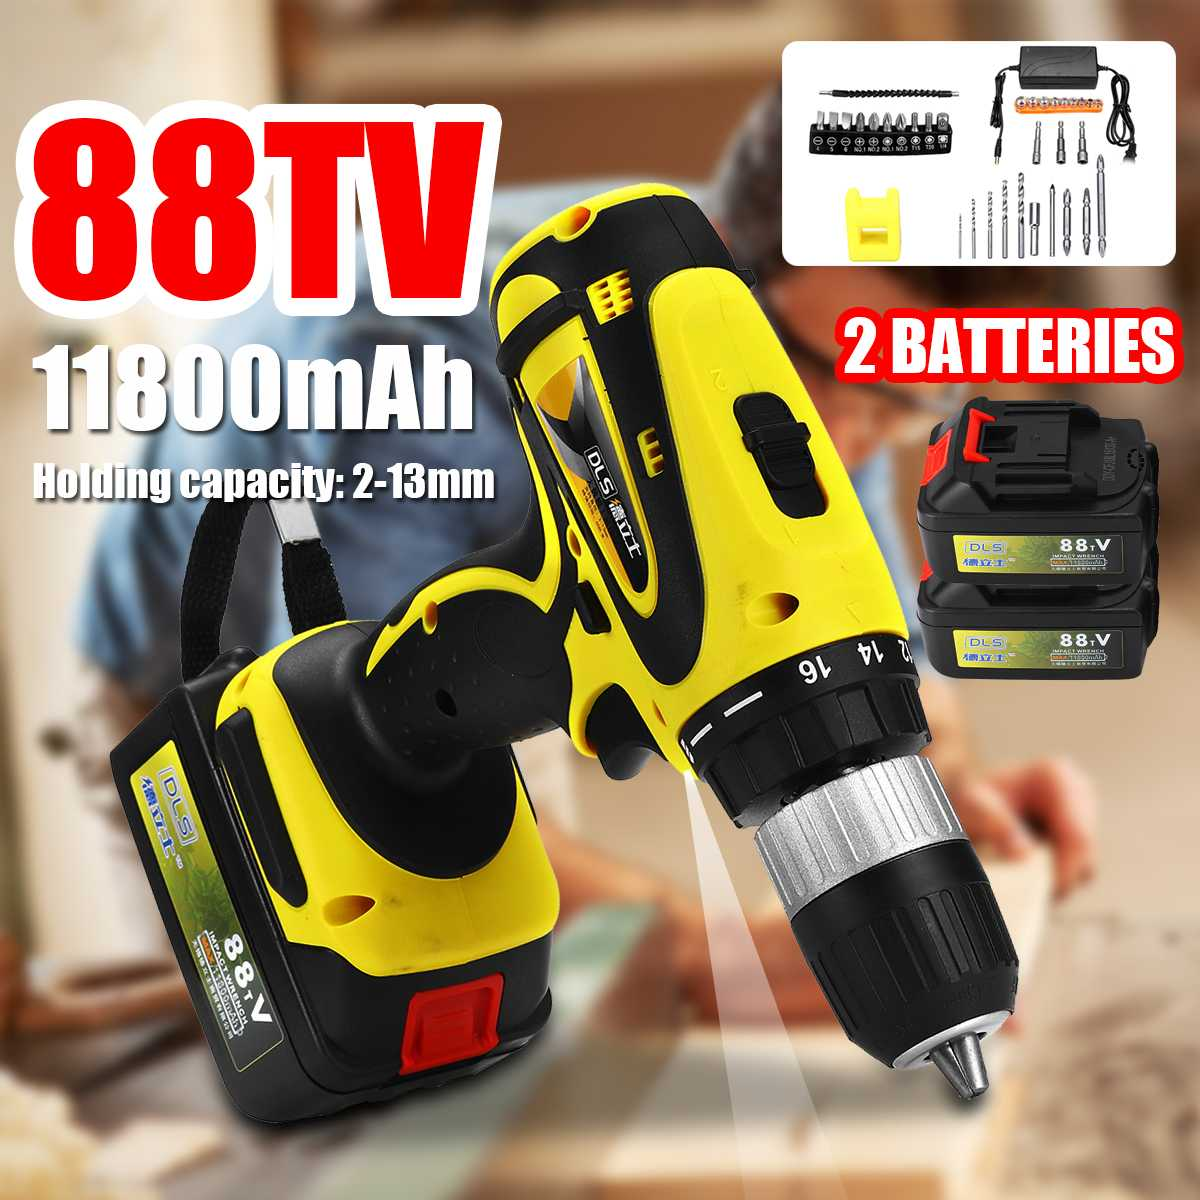 88TV 11800mAh 2-Speed Electric Cordless Drill 2-13MM Screwdriver Rechargeable Lithium Battery*2 60NM Hand Drill Bits Power Tool88TV 11800mAh 2-Speed Electric Cordless Drill 2-13MM Screwdriver Rechargeable Lithium Battery*2 60NM Hand Drill Bits Power Tool